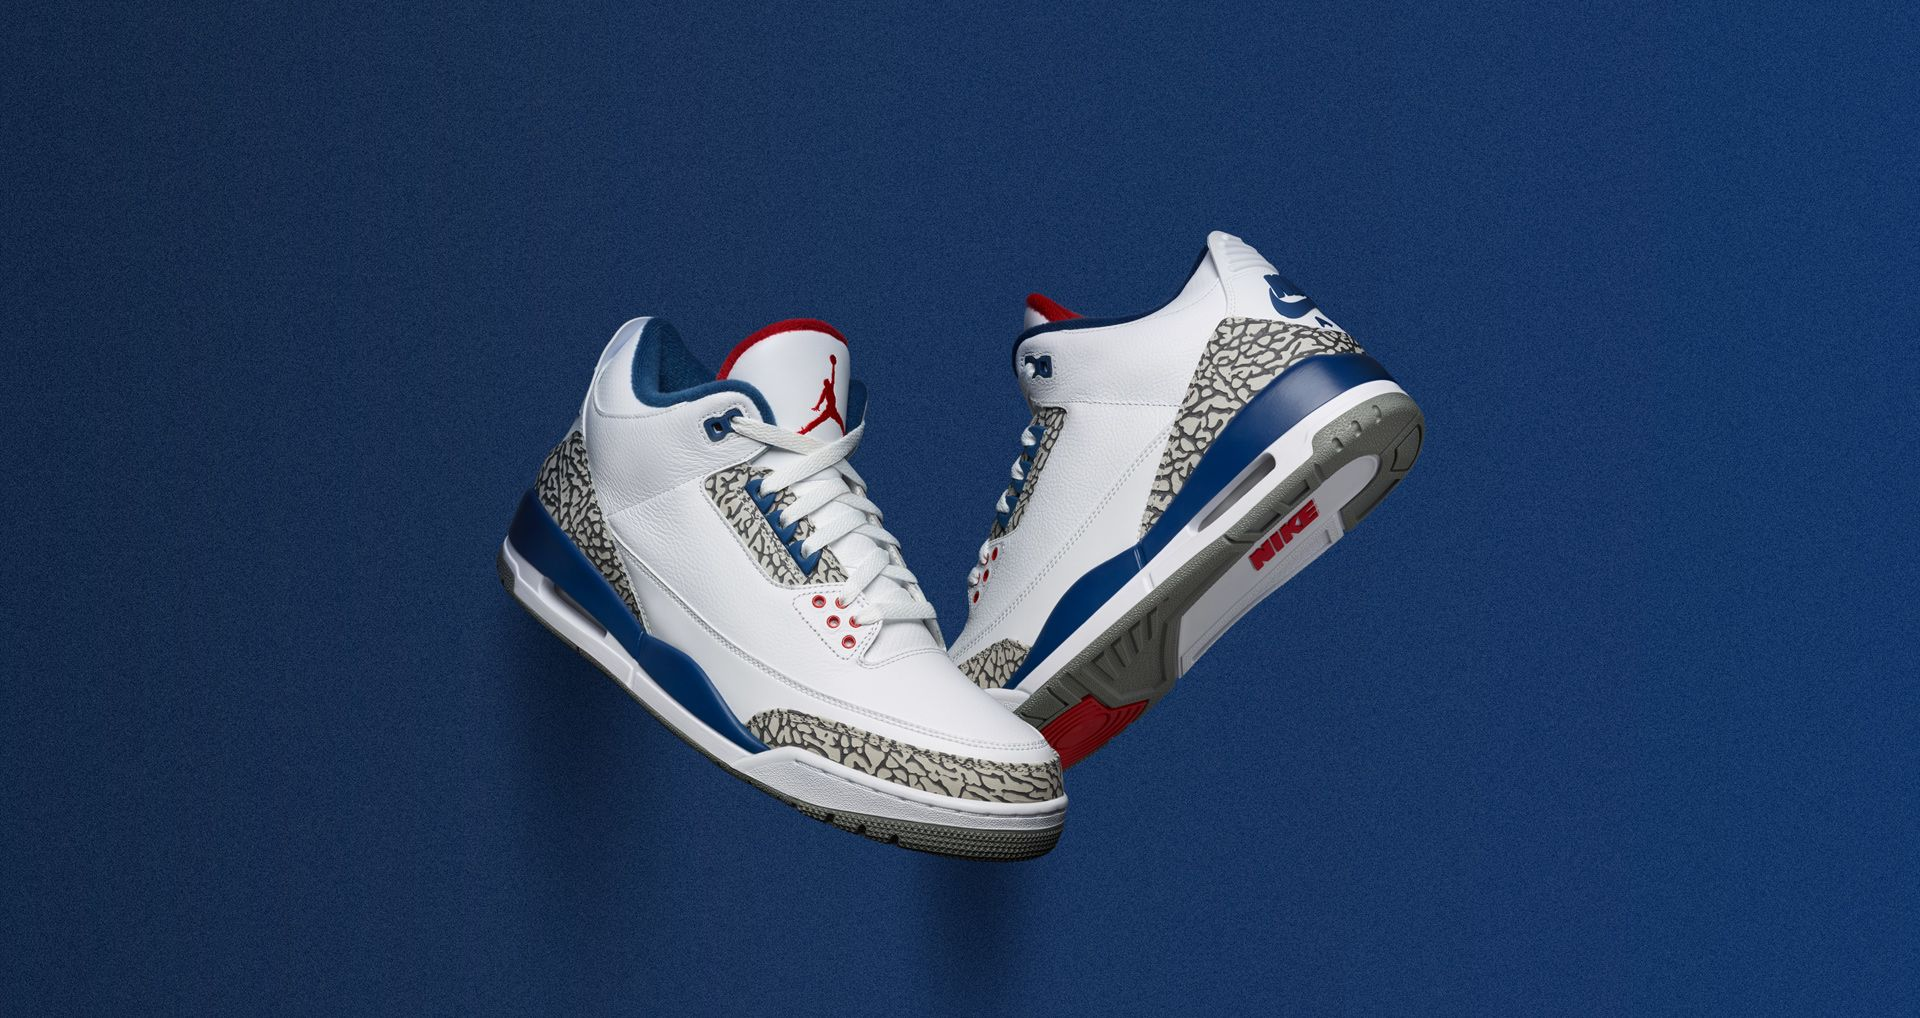 on sale a4dd7 93e6f Air Jordan 3 Retro OG 'White & Cement Grey & Blue'. Nike⁠+ SNKRS